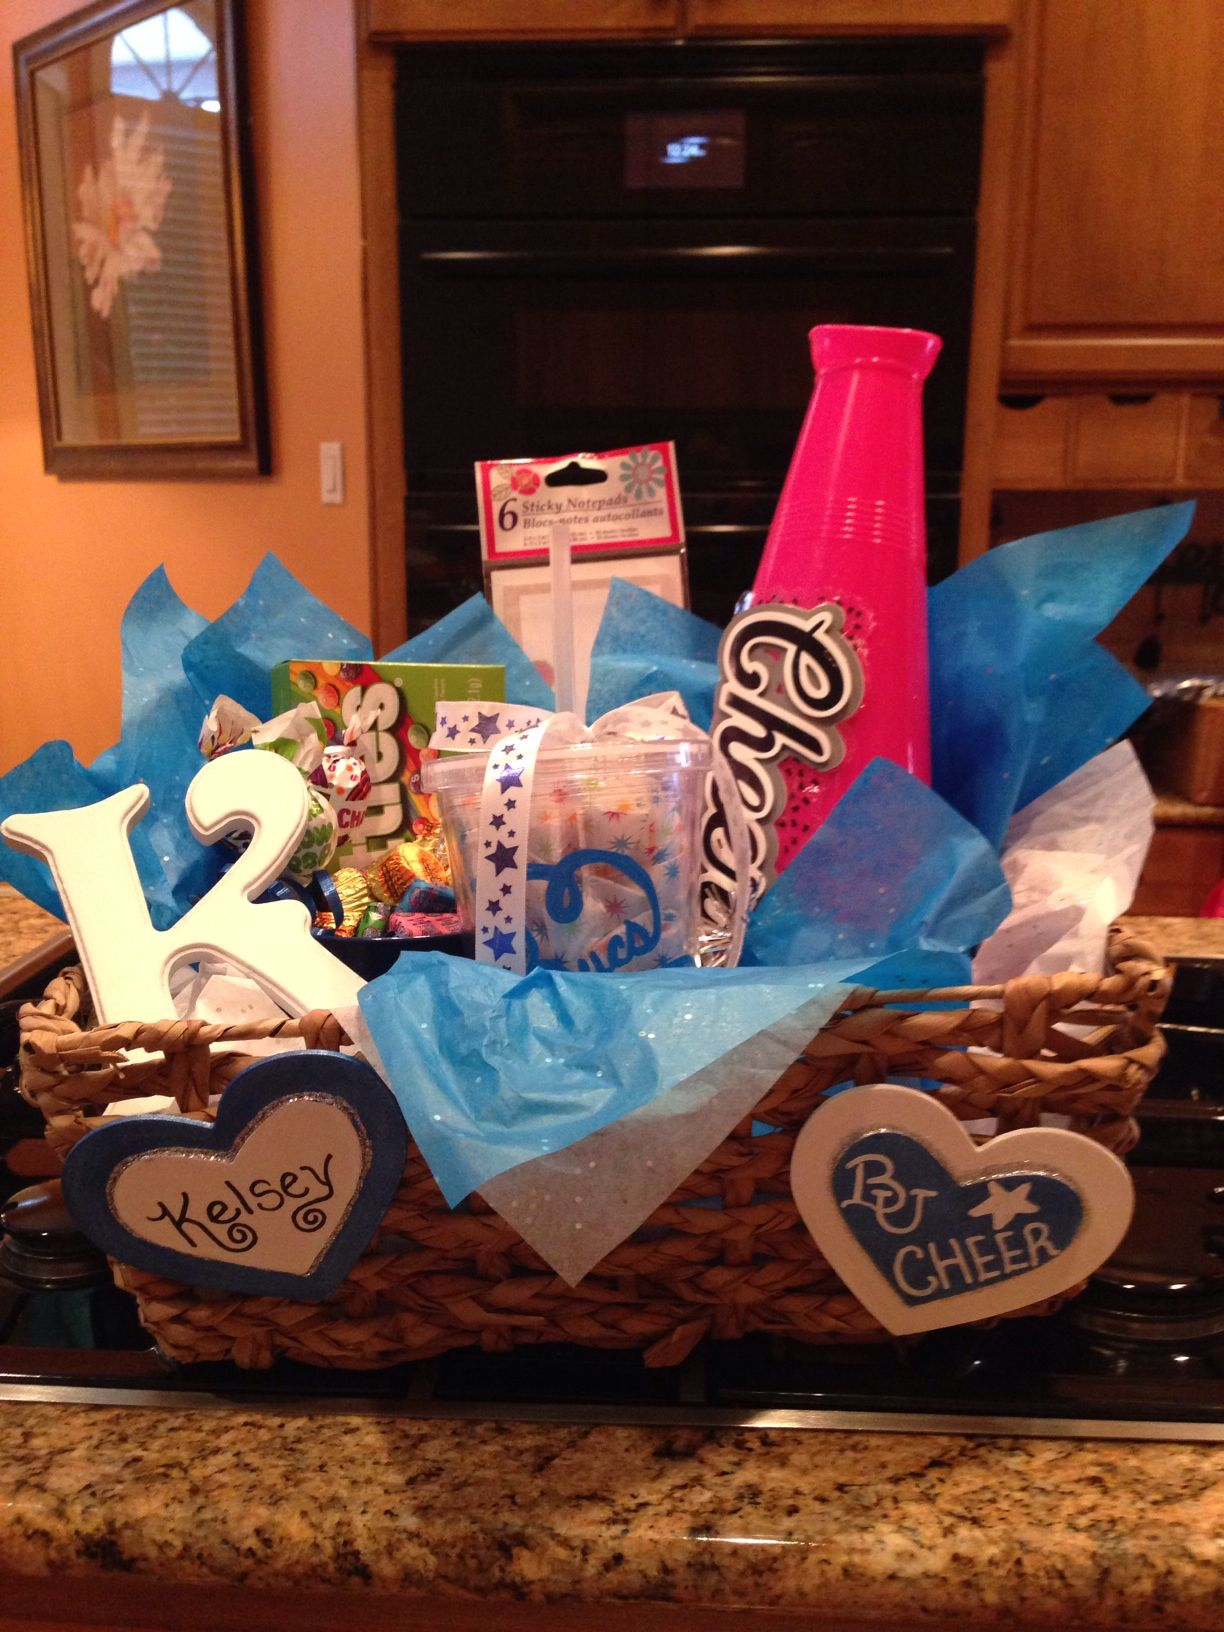 Cheer T Baskets Turned Out Super Cute